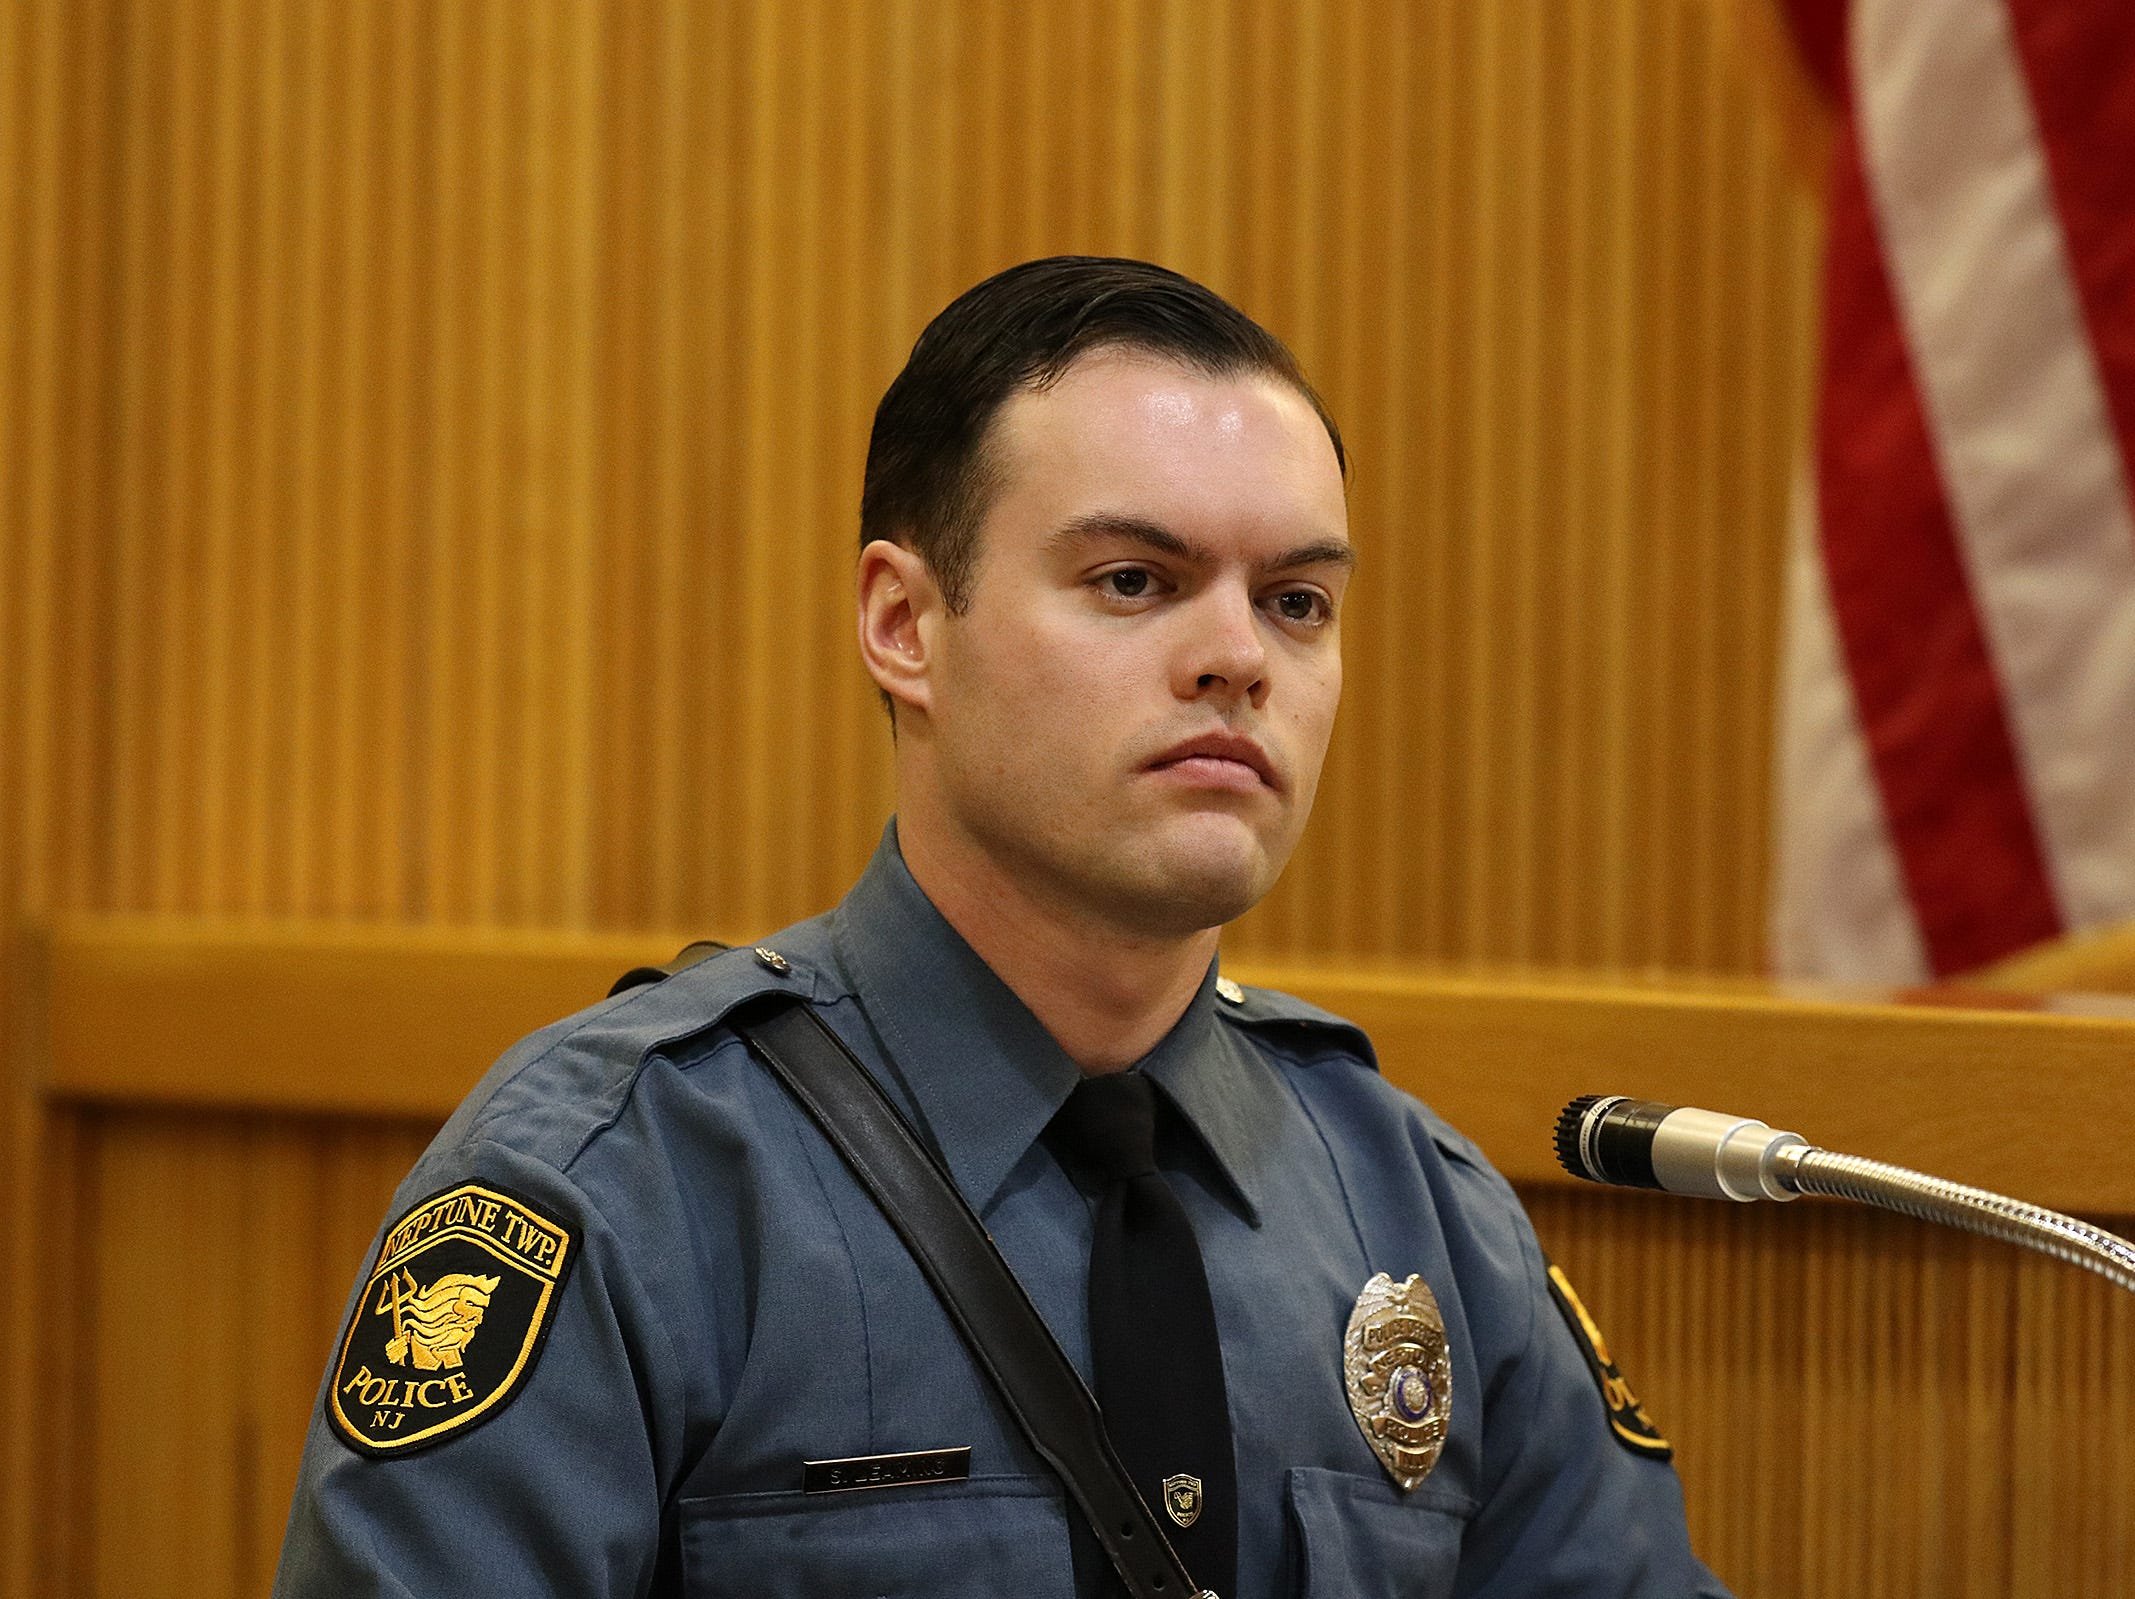 Neptune Twp. Ptl. Shane Leaming testifies during the trial of Liam McAtasney, who is charged with the murder of former high school classmate, Sarah Stern, before Superior Court Judge Richard W. English at the Monmouth County Courthouse in Freehold, NJ Tuesday January 29, 2019.